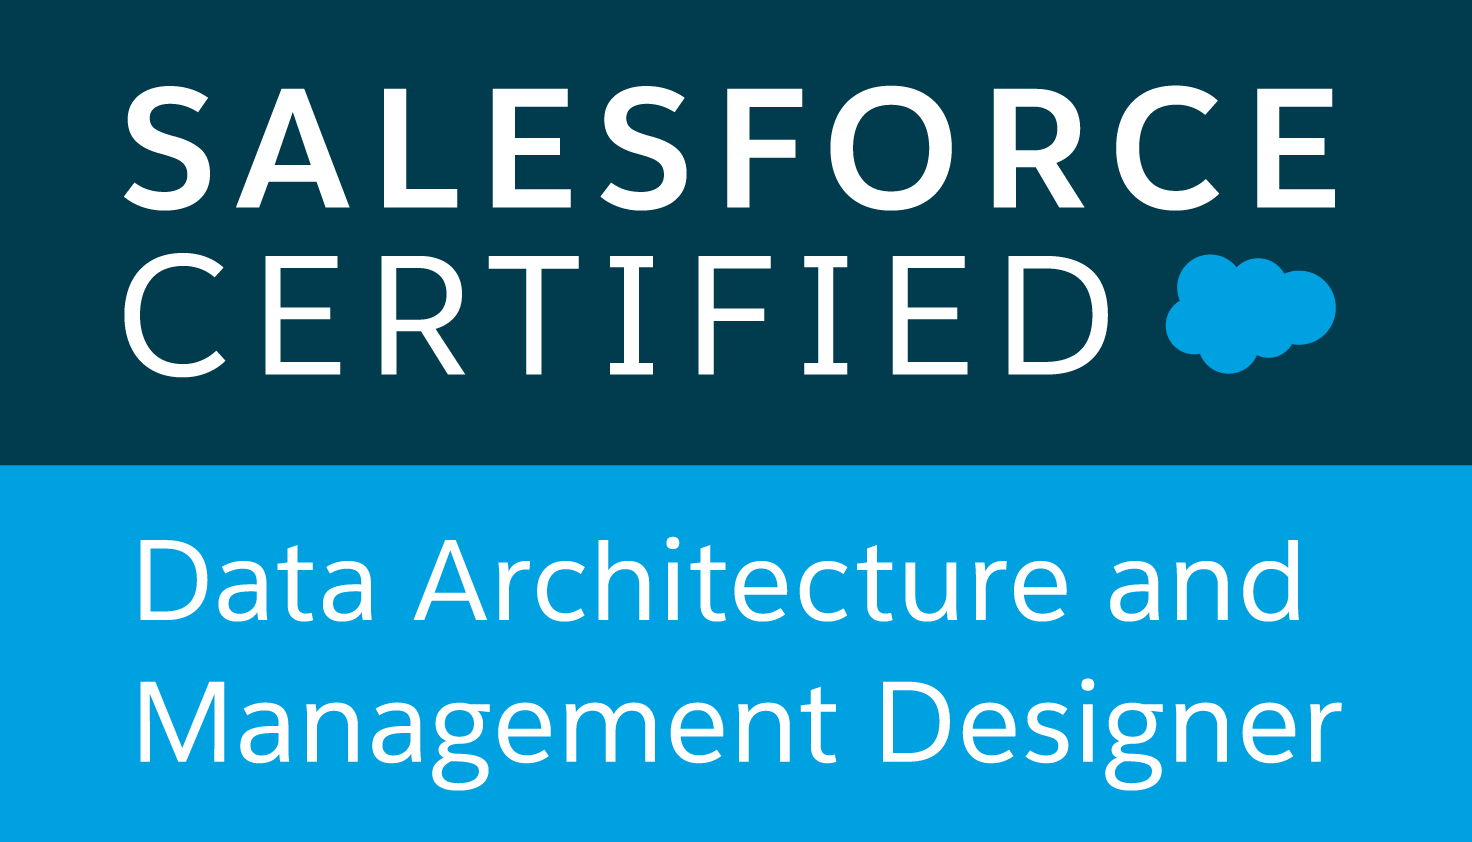 Data Architecture and Management Designer